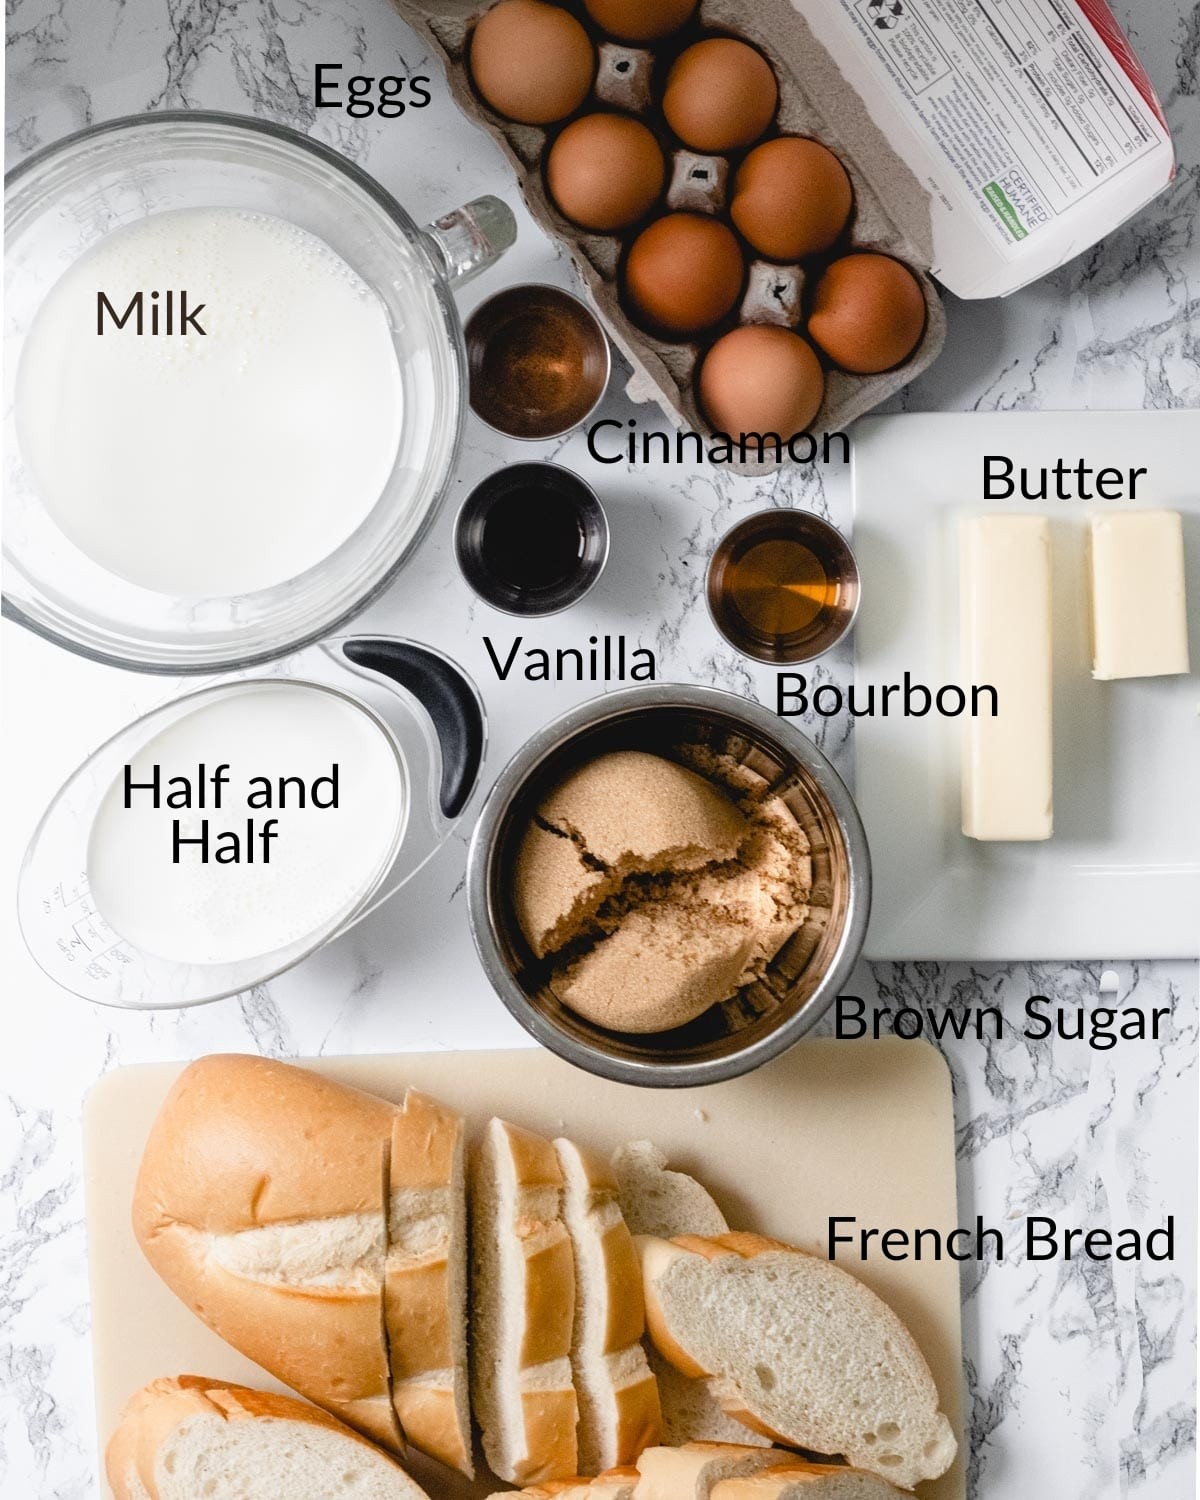 Ingredients for bourbon French toast casserole: milk, half and half, eggs, French bread, cinnamon, vanilla, bourbon, brown sugar, and butter.